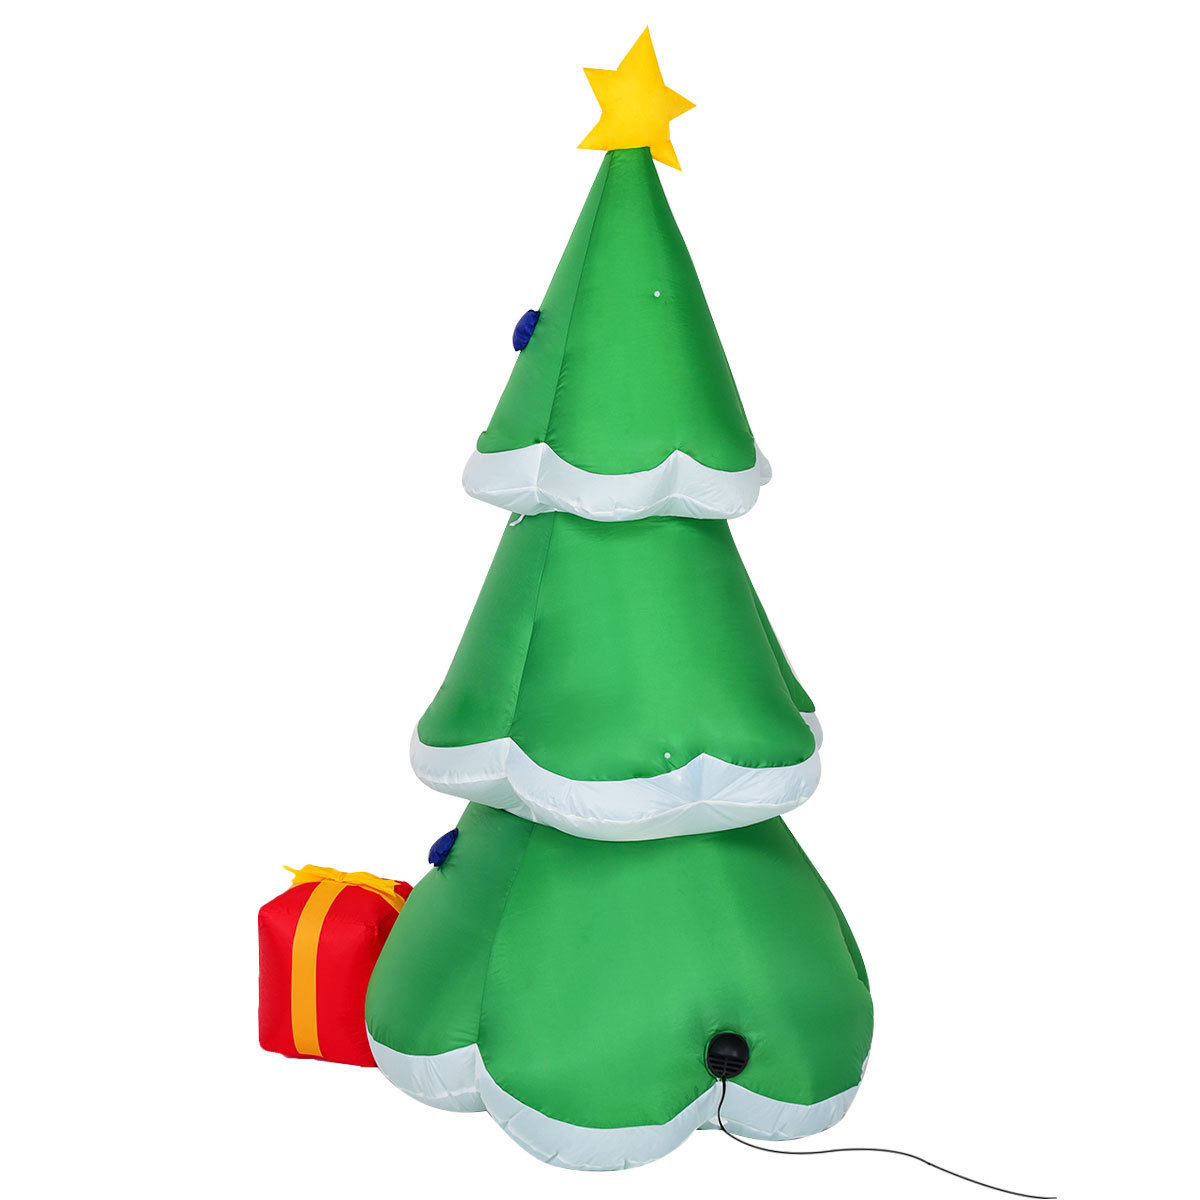 Gymax 6FT Inflatable Christmas Tree w/ Gift Boxes Lighted Christmas Decor - image 6 of 7